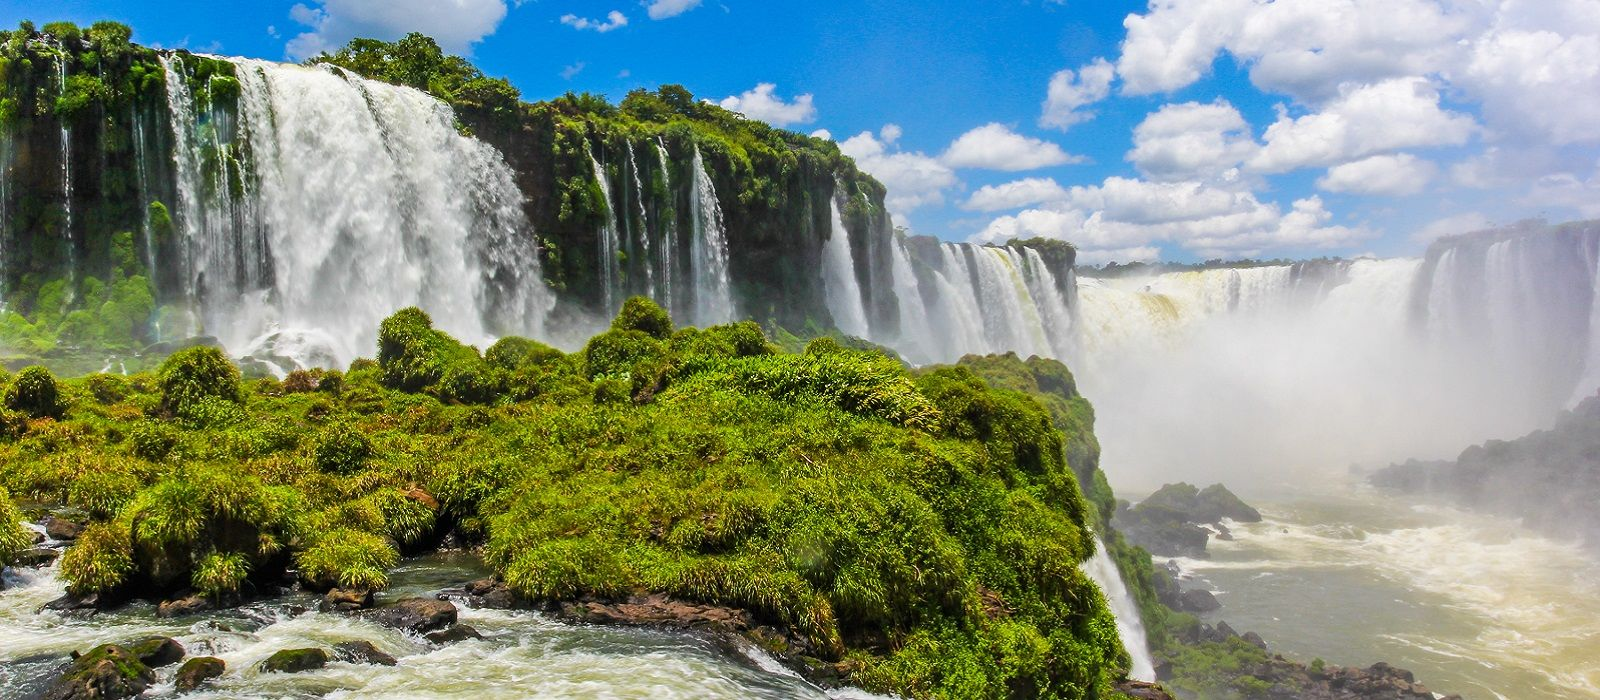 Argentina: Wine and Waterfalls Tour Trip 1